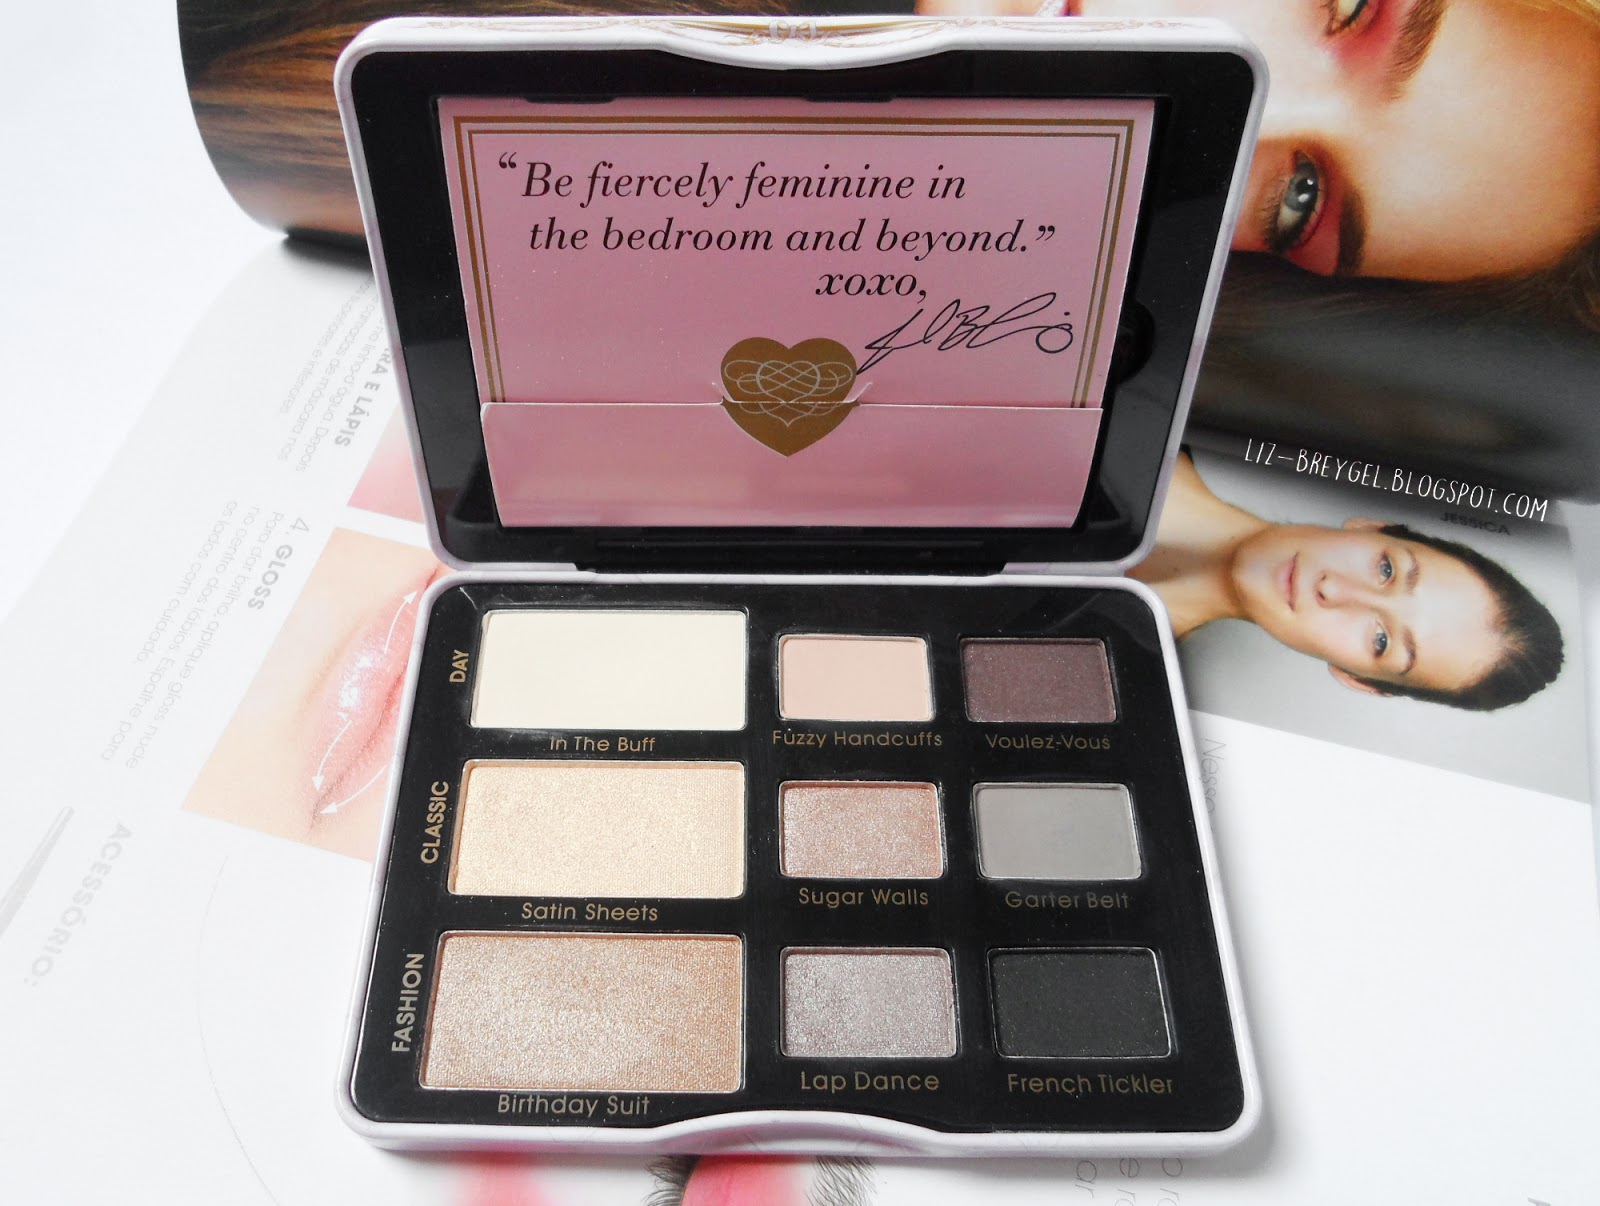 Shop for and buy toofaced online at Macy's. Find toofaced at Macy's. Macy's Presents: The Edit- A curated mix of fashion and inspiration Check It Out. Free Shipping with $99 purchase + Free Store Pickup. Contiguous US. Exclusions. Free 3pc Beauty Gift W/ $75 Too Faced purchase.